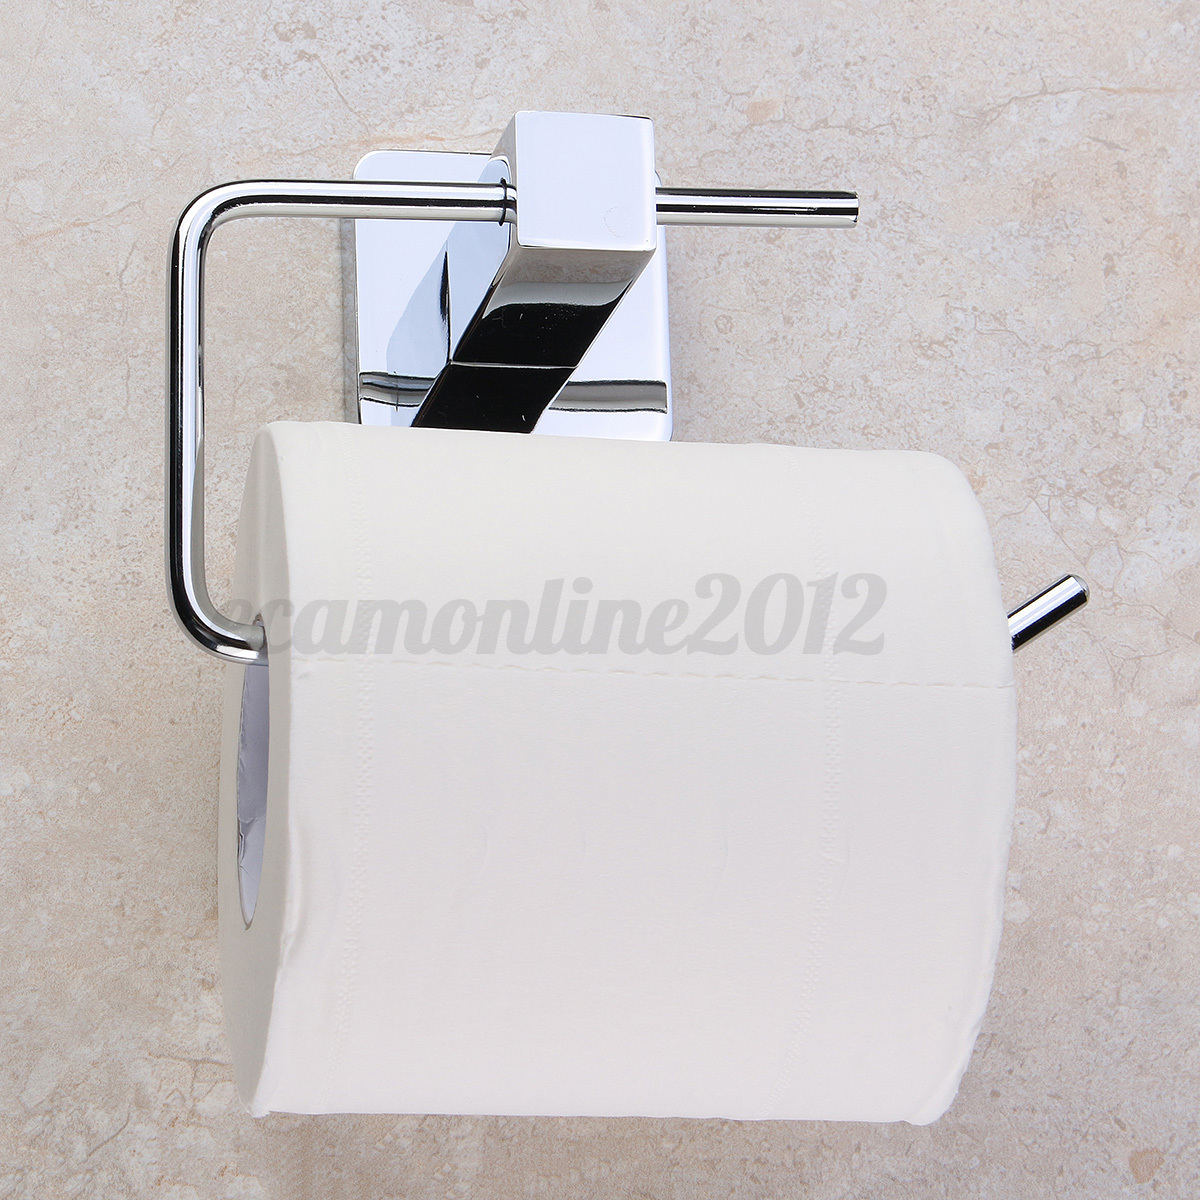 Bathroom Toilet Holder Stainless Steel Chrome Bathroom Toilet Paper Roll Tissue